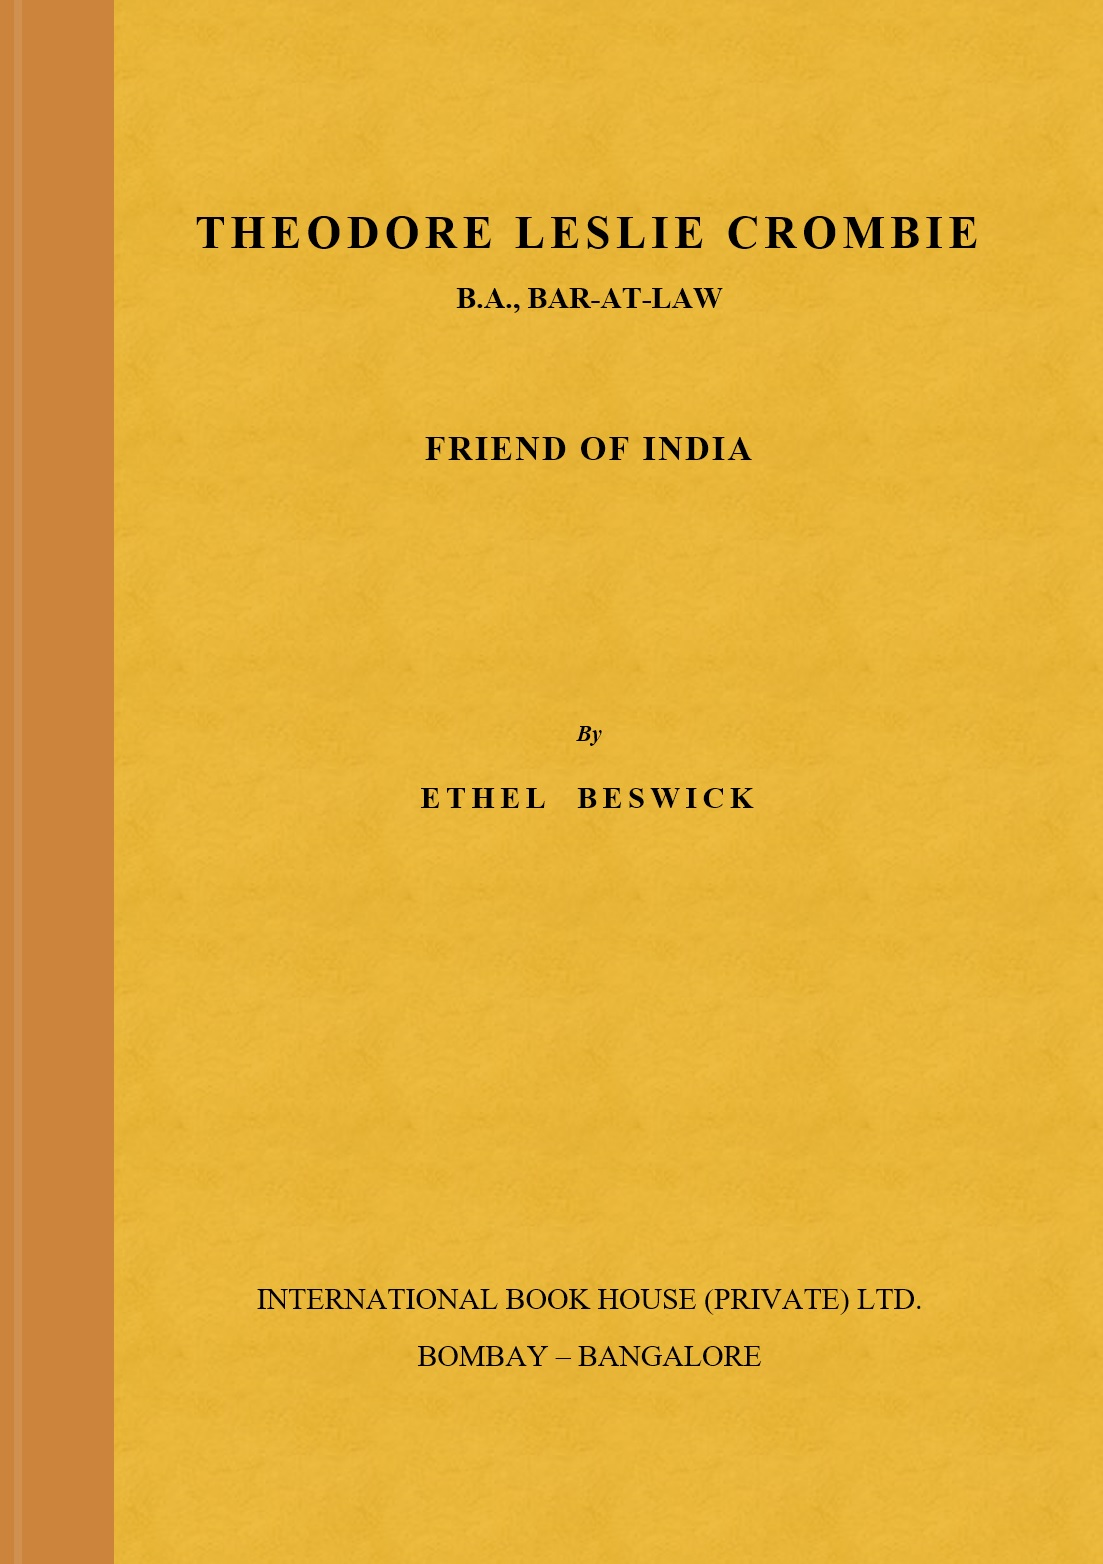 Theodore Leslie Crombie – Friend of India by Ethel Beswick